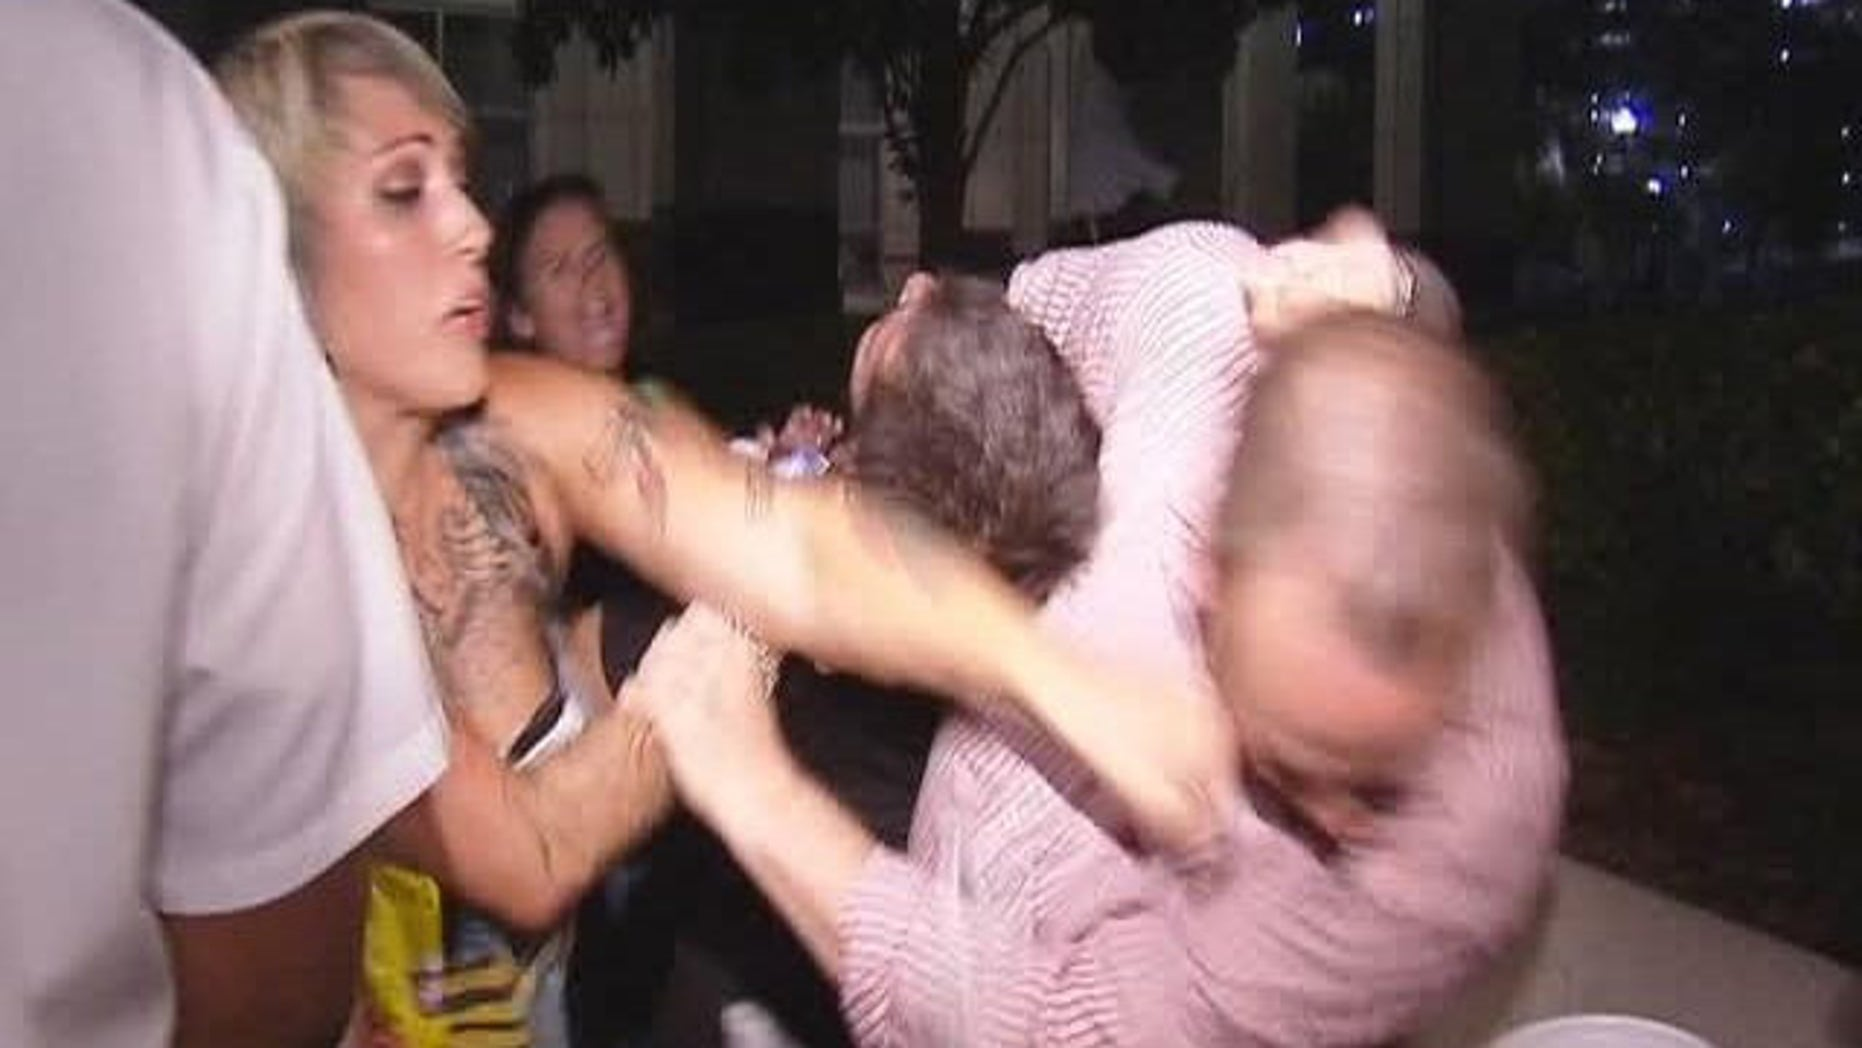 A brawl broke out among spectators waiting in line for tickets to Casey Anthony's murder trial in Florida.